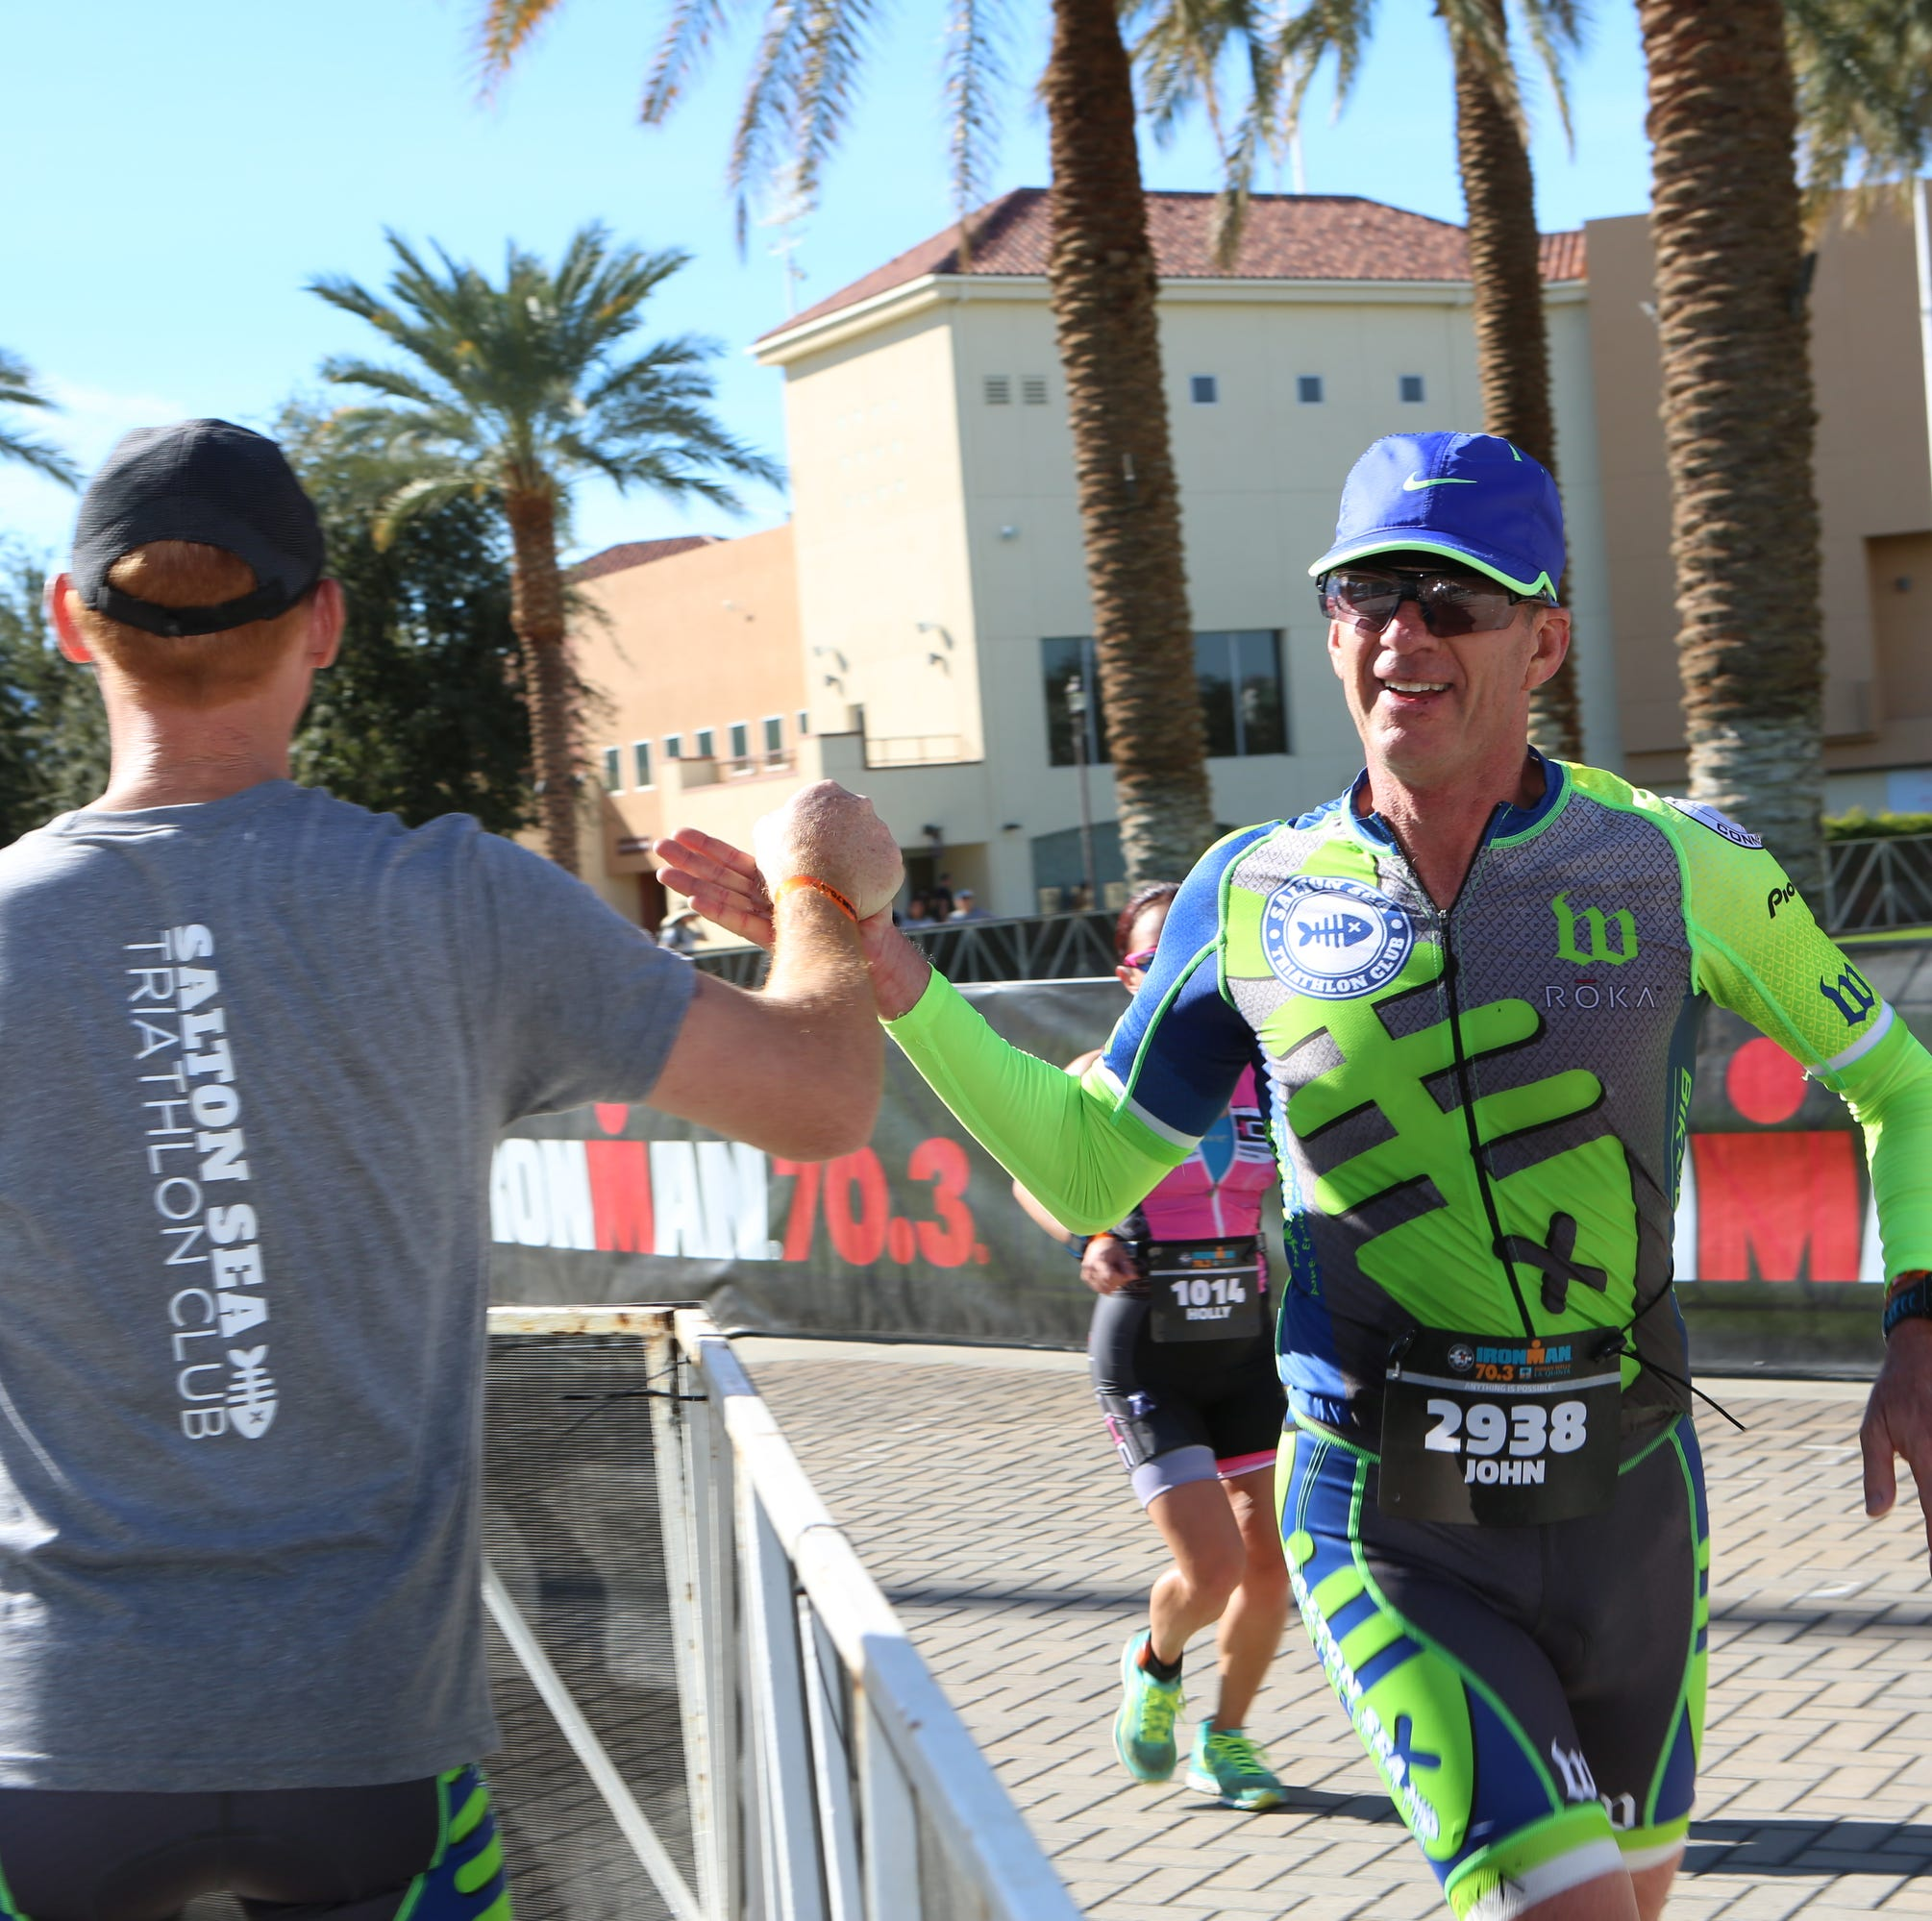 Ironman 70.3 will return to La Quinta; council approves new route